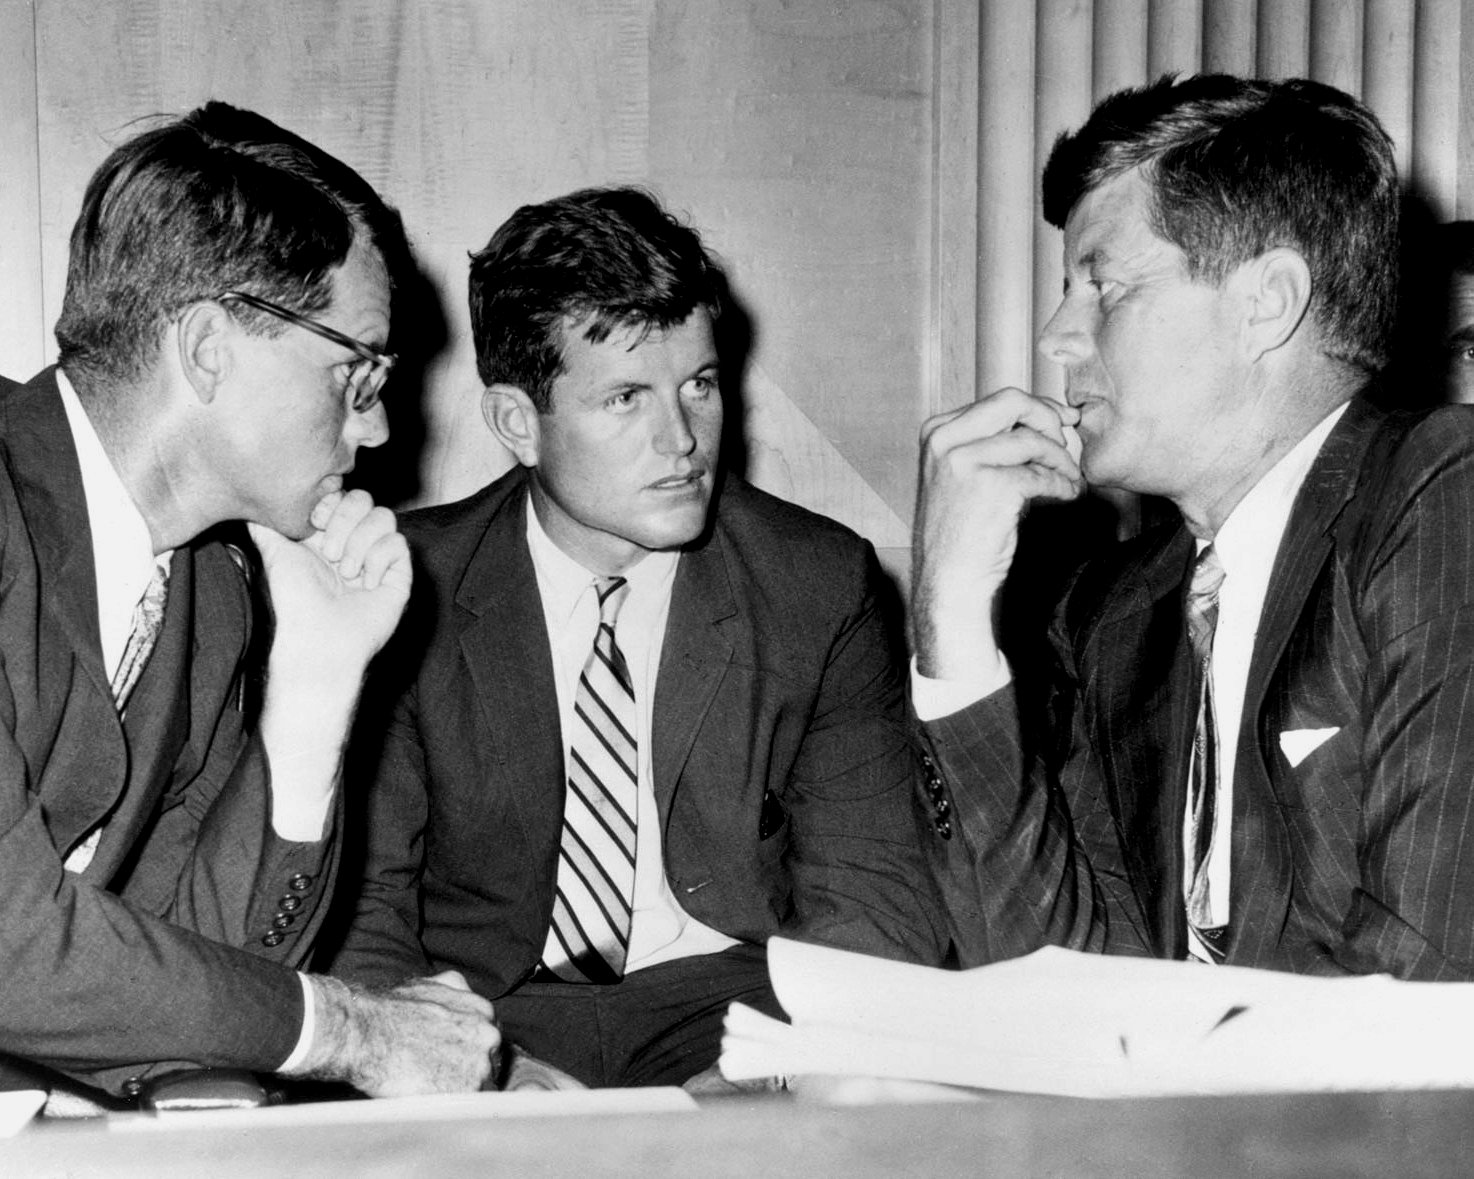 PRESIDENT JOHN F KENNEDY W/ BROTHERS ROBERT & EDWARD IN 1962 8X10 PHOTO (AZ-031)